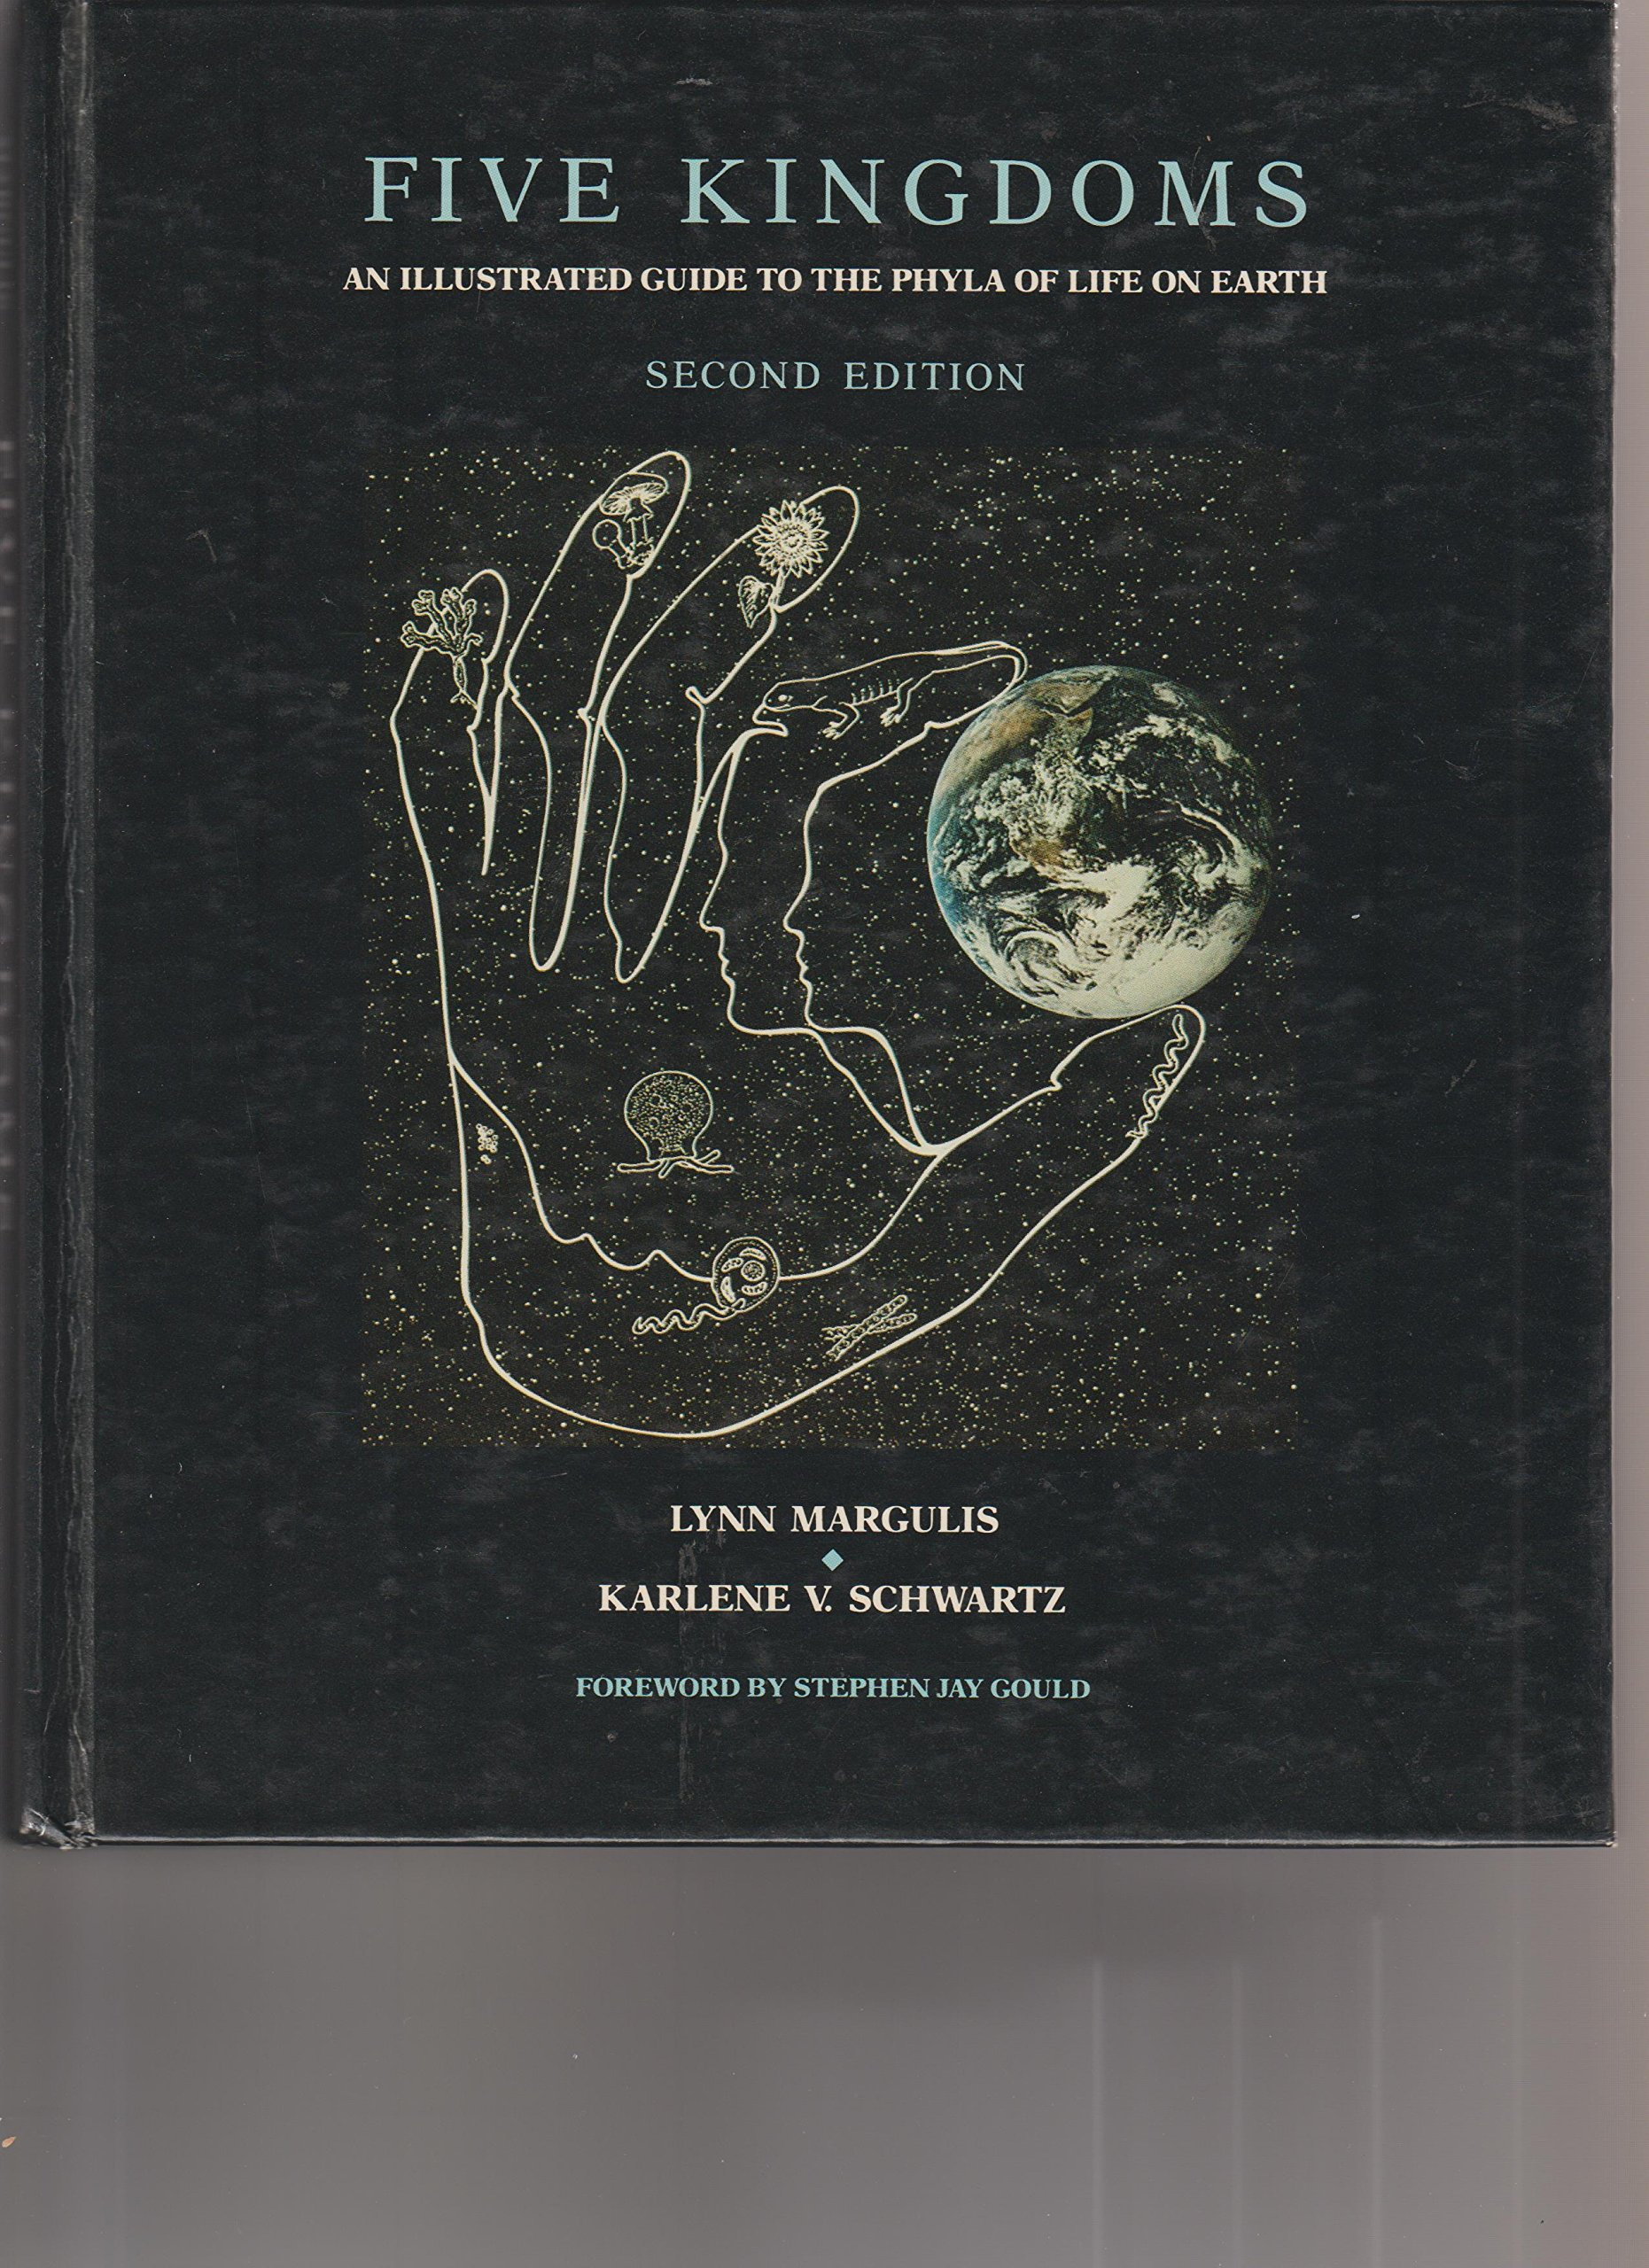 Five Kingdoms Il Rated Guide To The Phyla Of Life On Earth Hardcover 1988